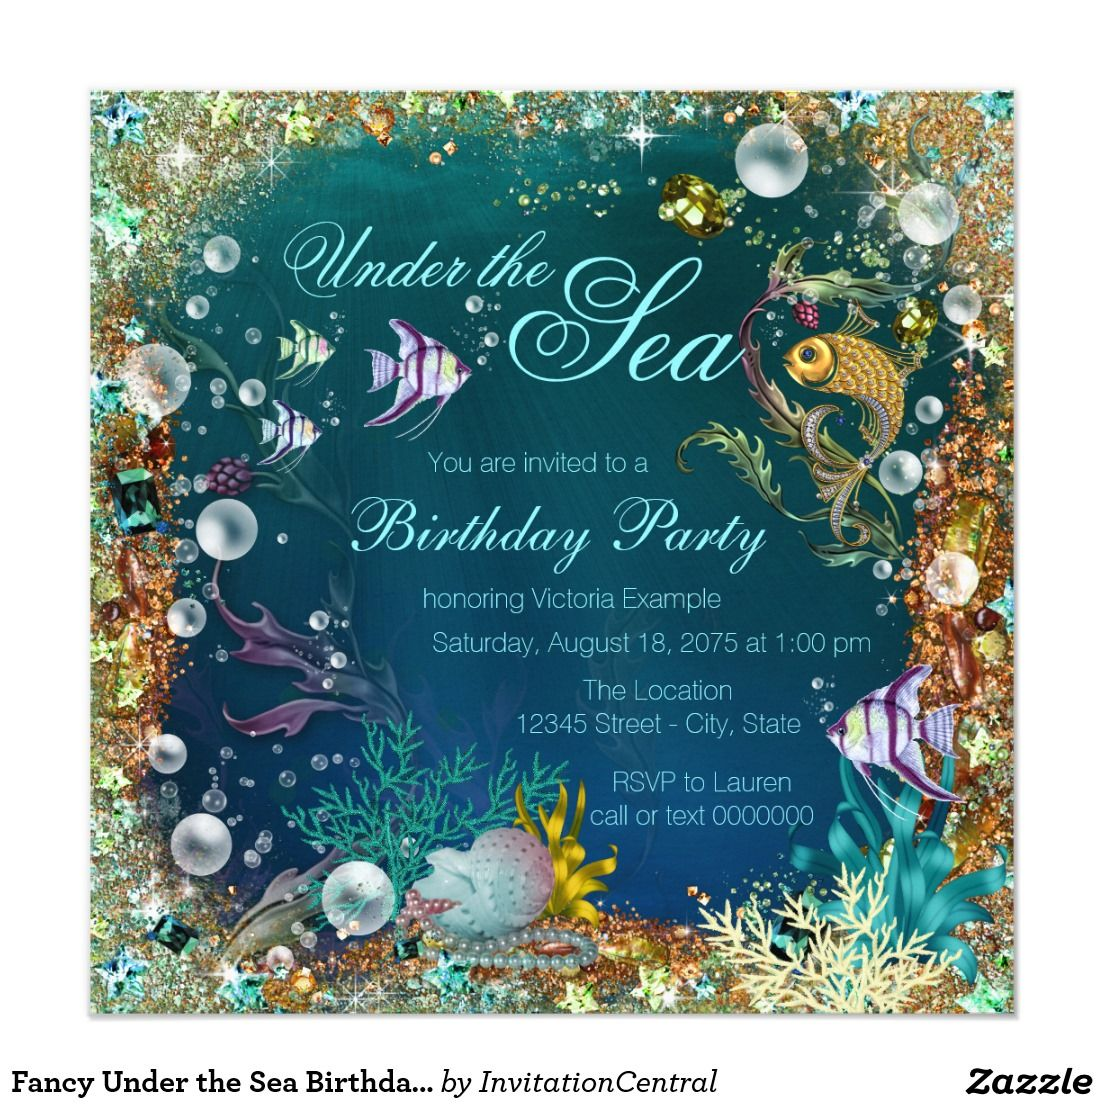 Fancy under the sea birthday party card invitations the oujays